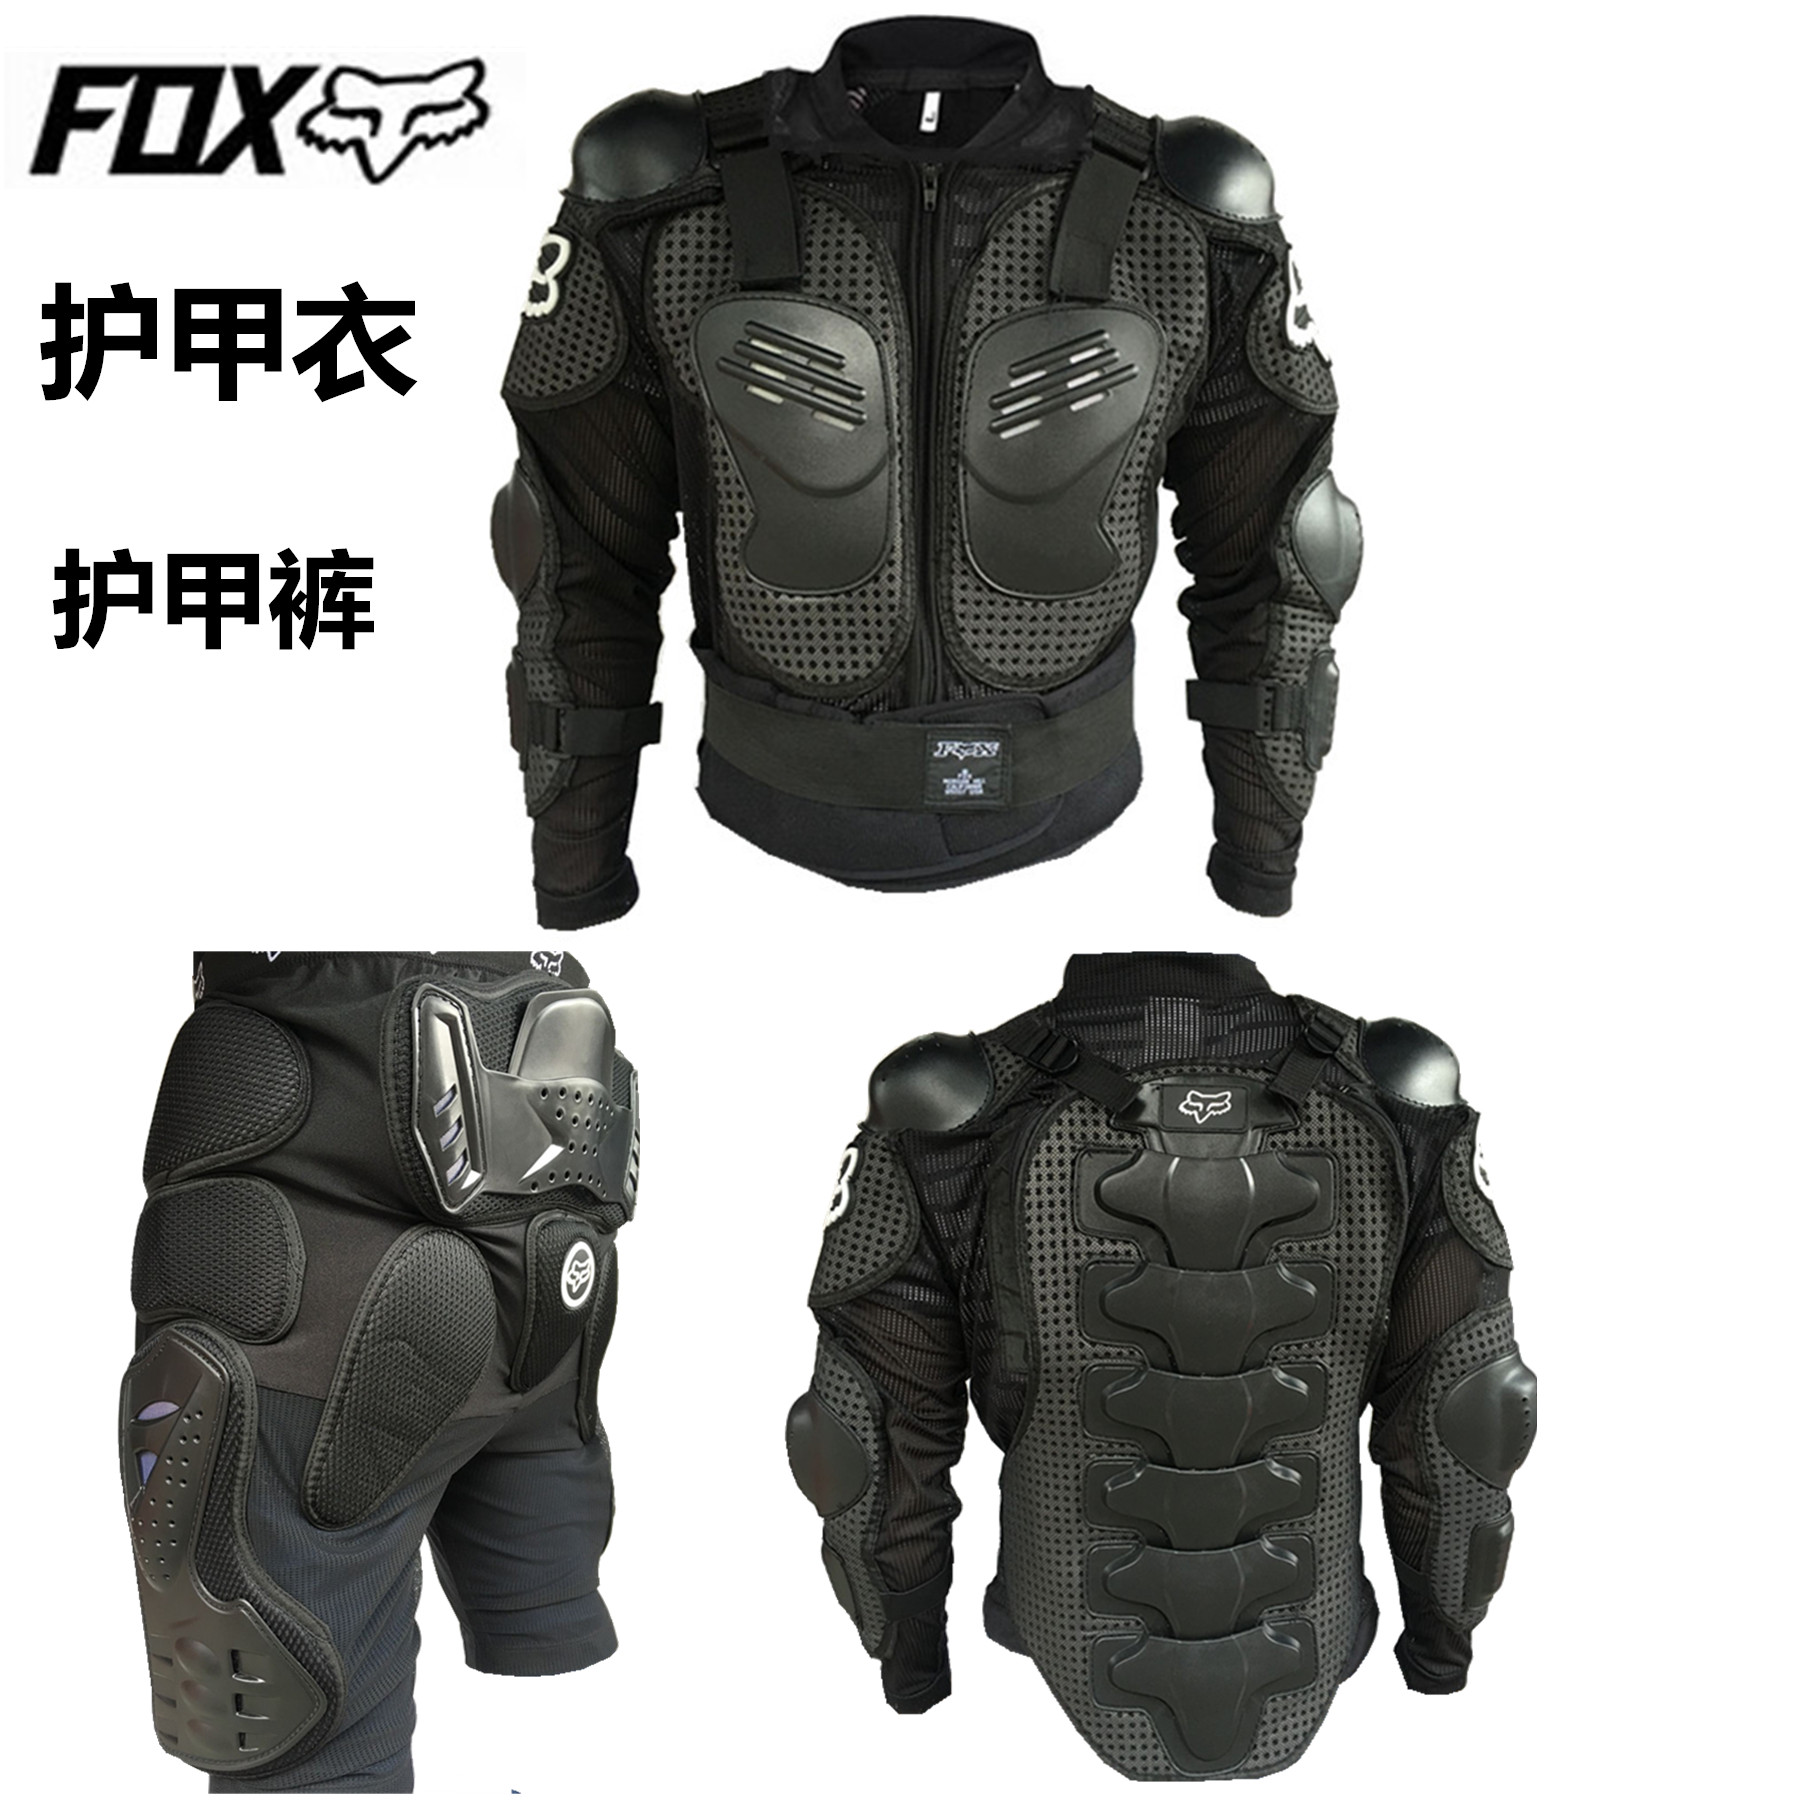 Motorcycle riding armor clothing locomotive knight armor protective gear chest off-road pants riding suit racing suit armor